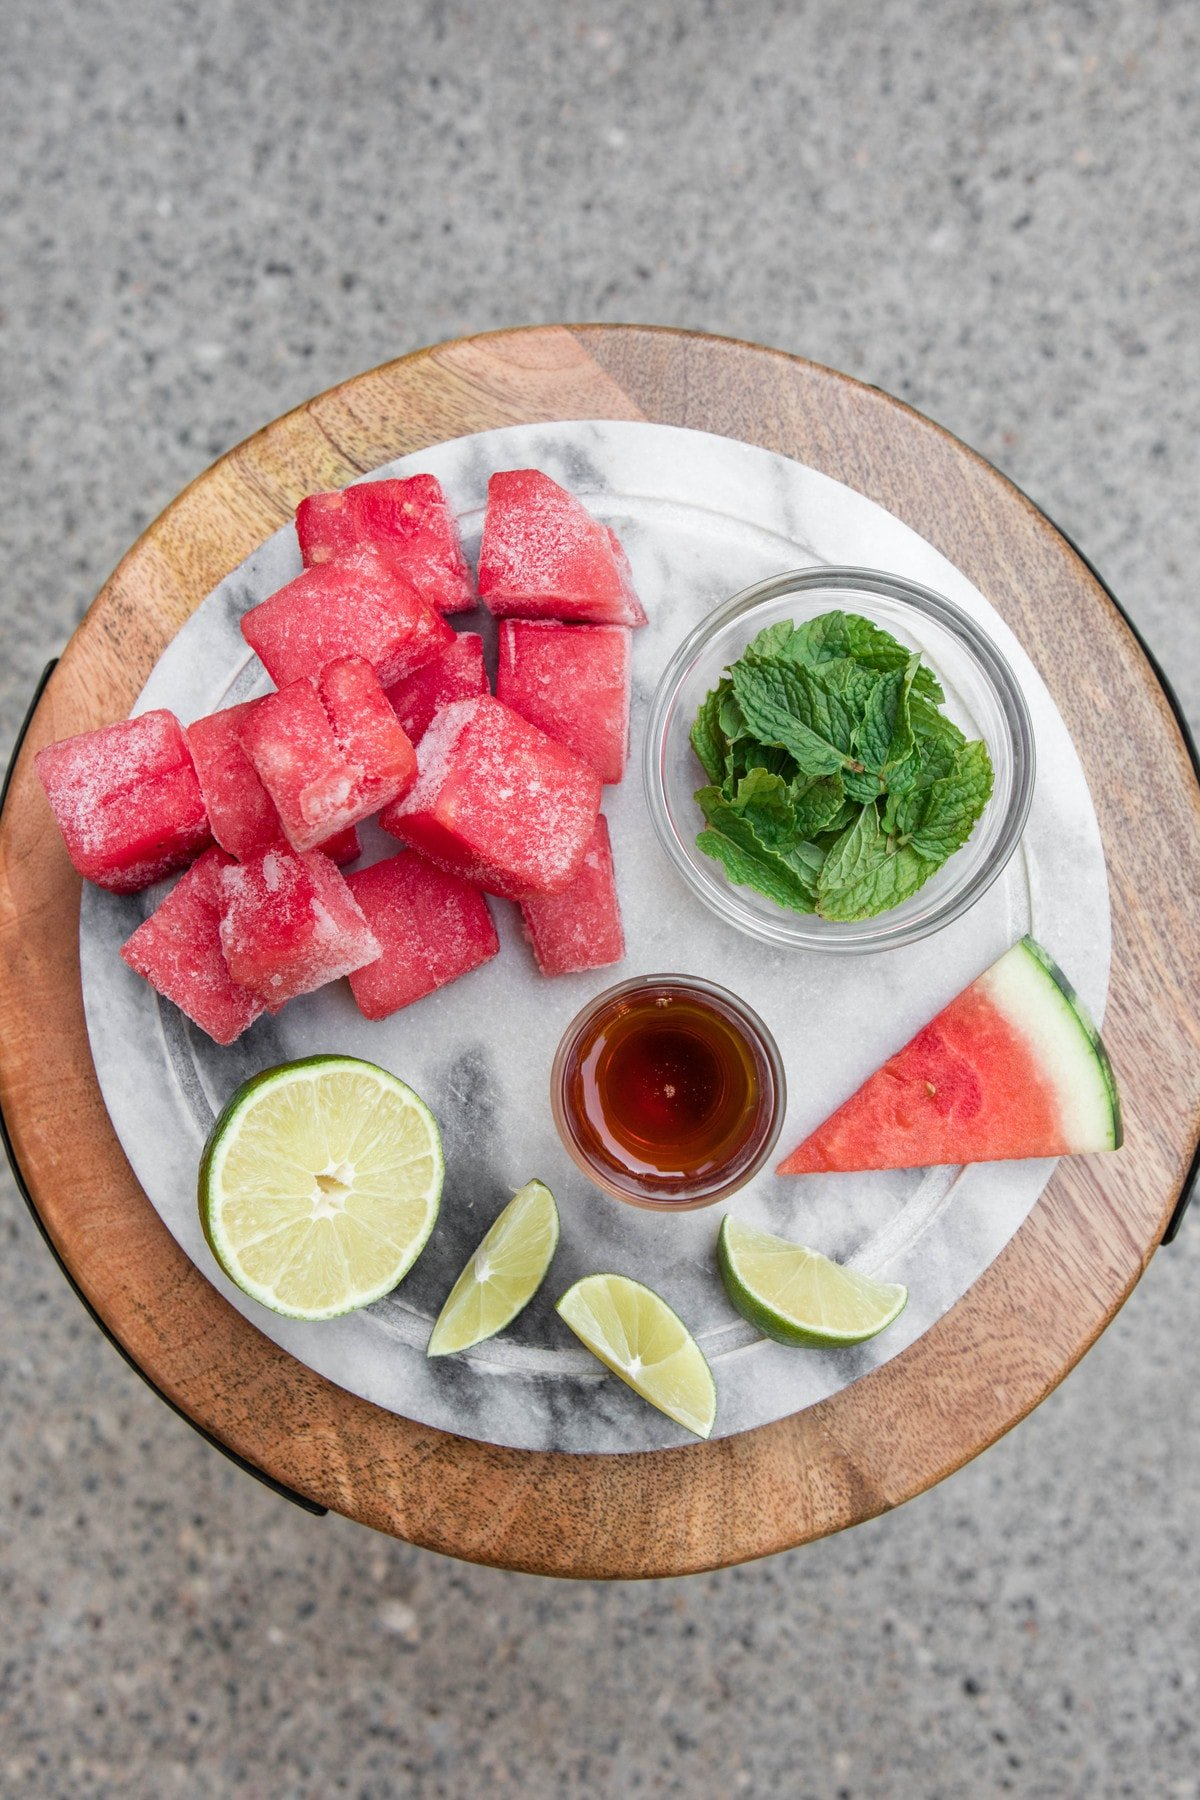 ingredients for watermelon slushie on marble cutting board